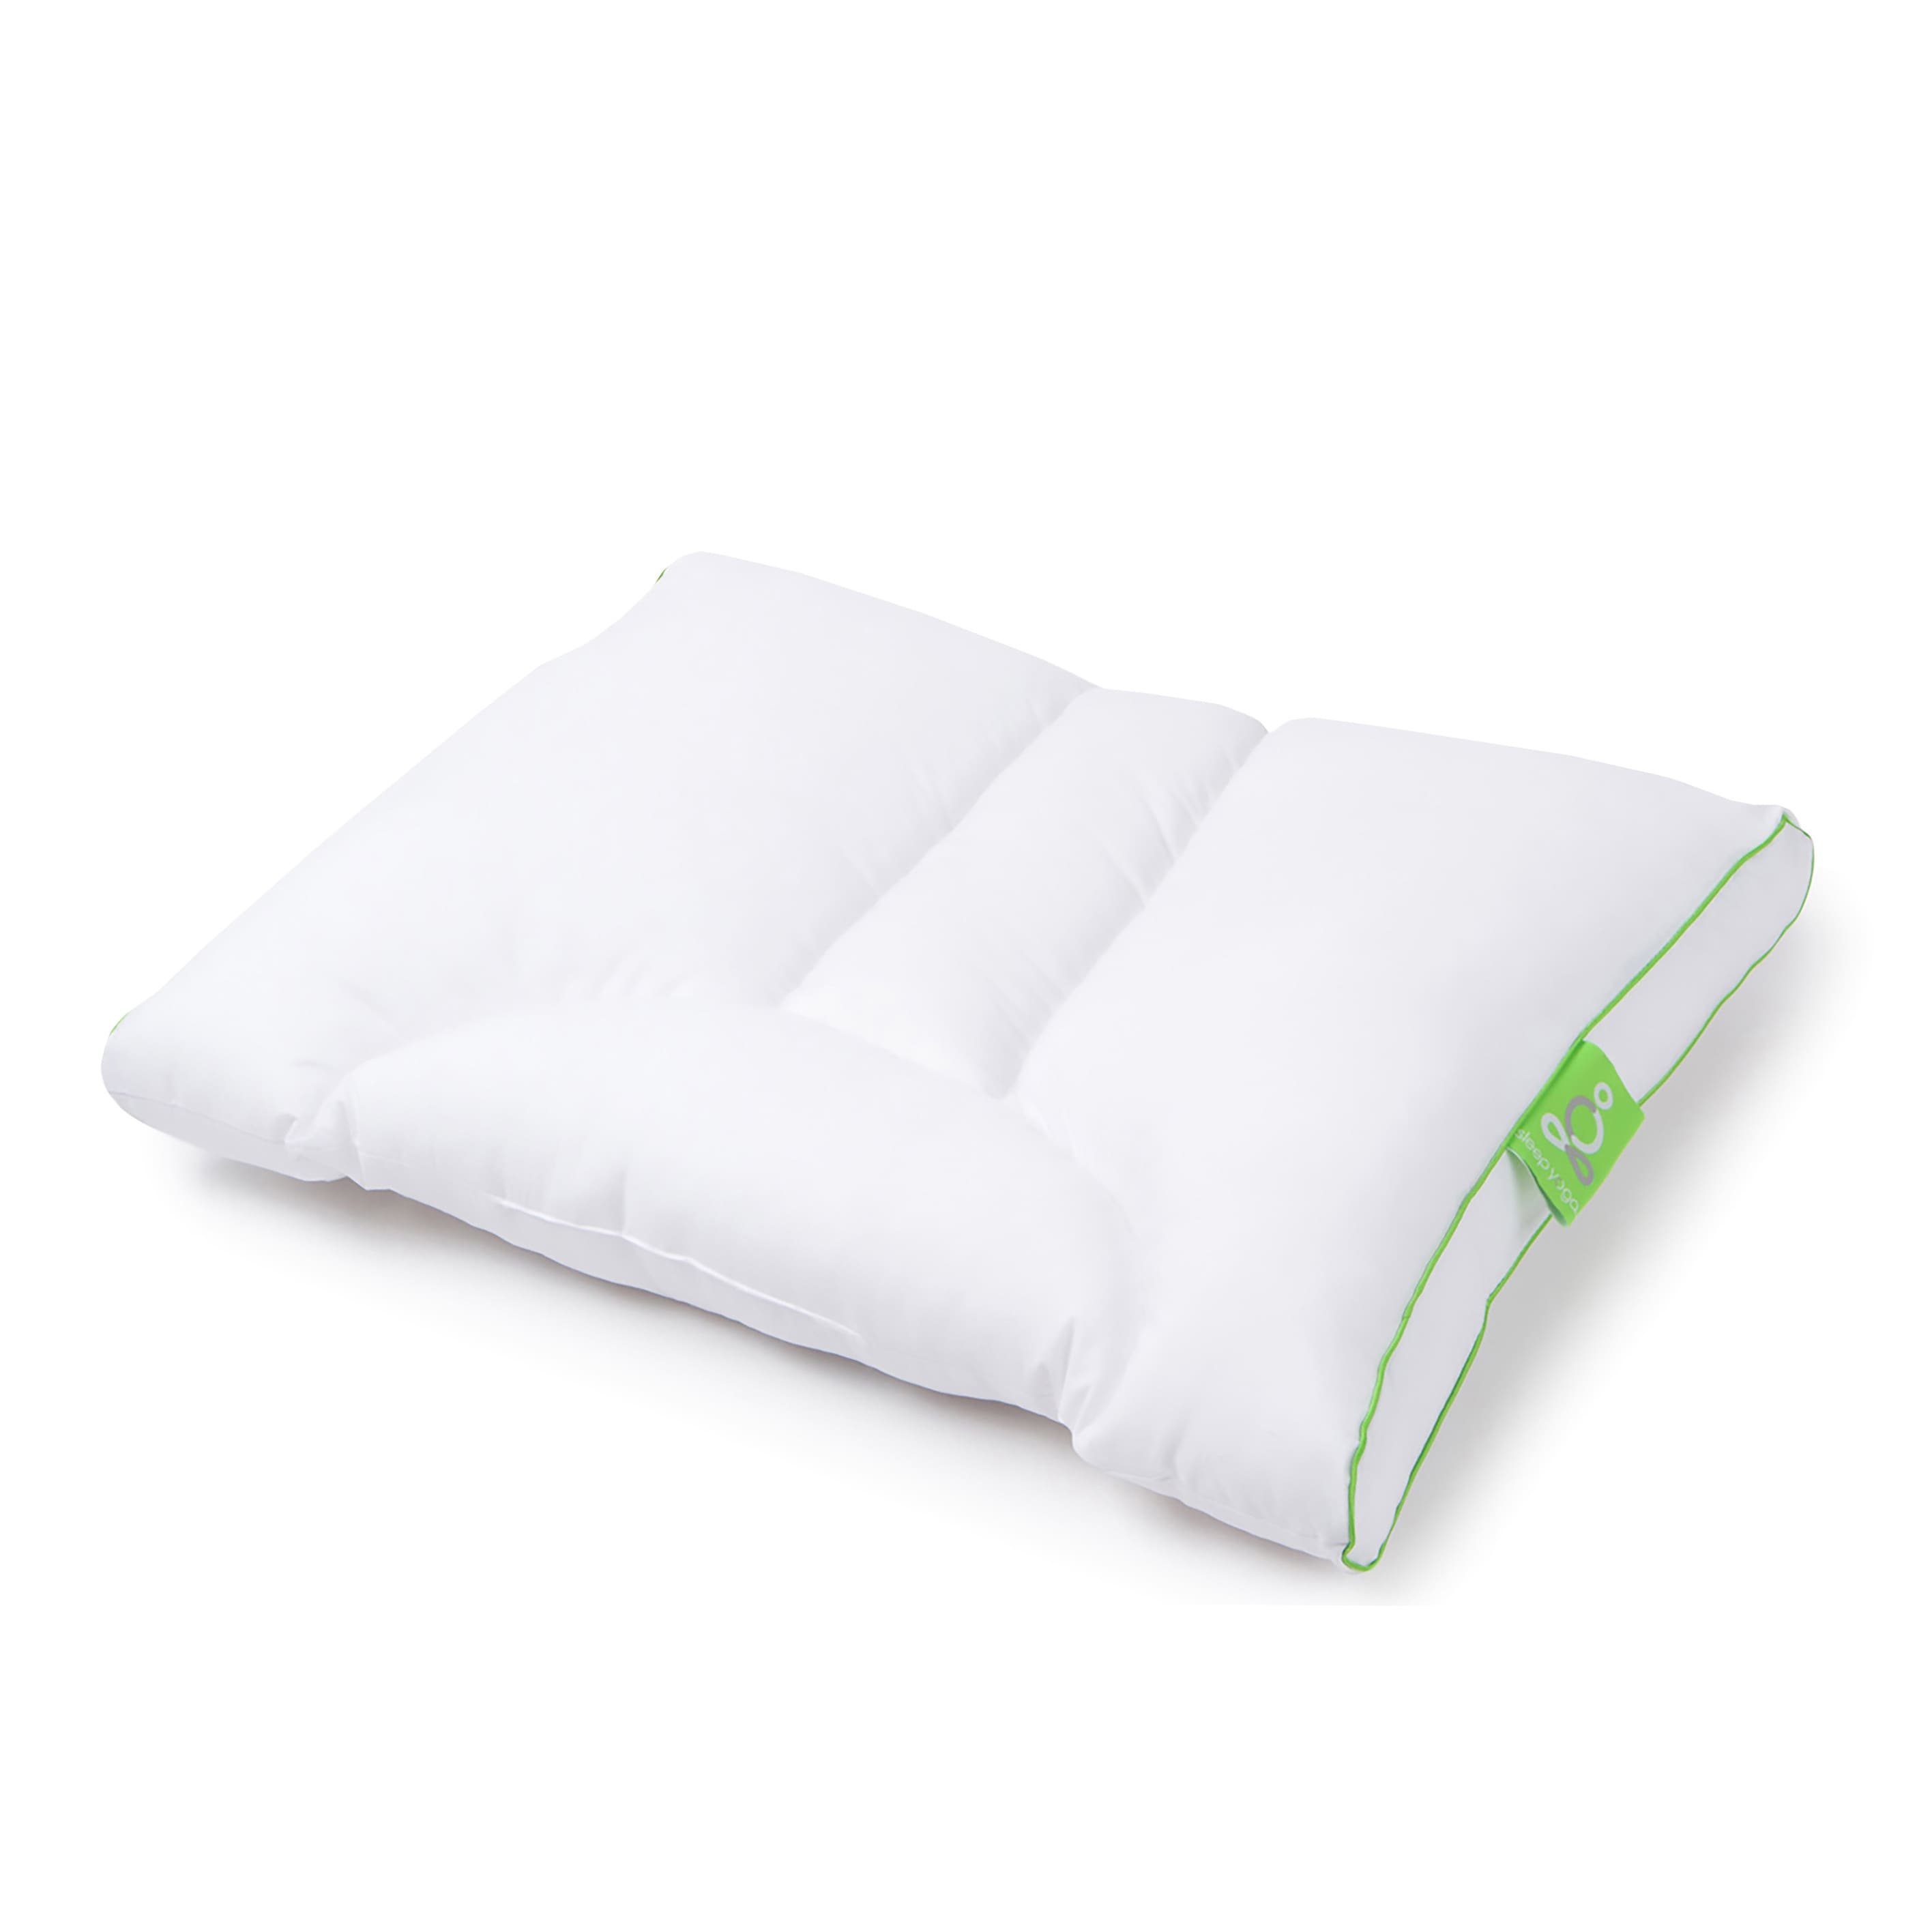 wellbeing pillow sleepers health best sleeper alleviate pain and for could how stomach your